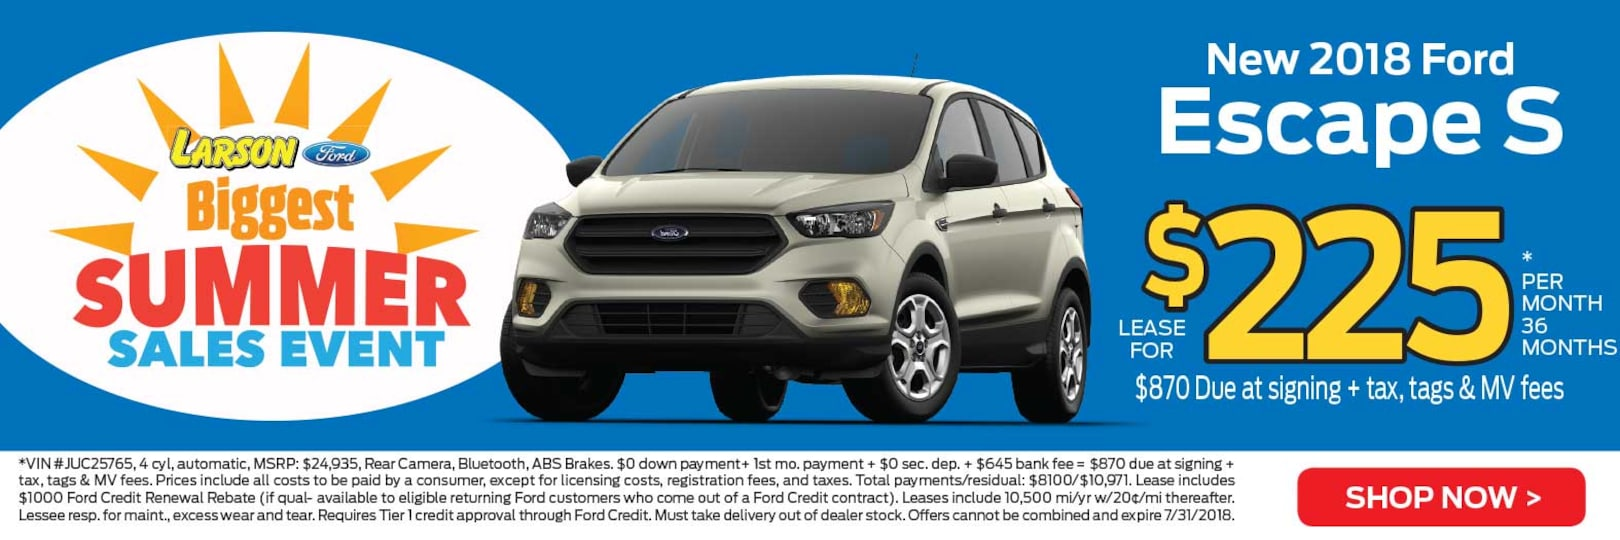 New & Used Cars in Lakewood, NJ | Larson Ford